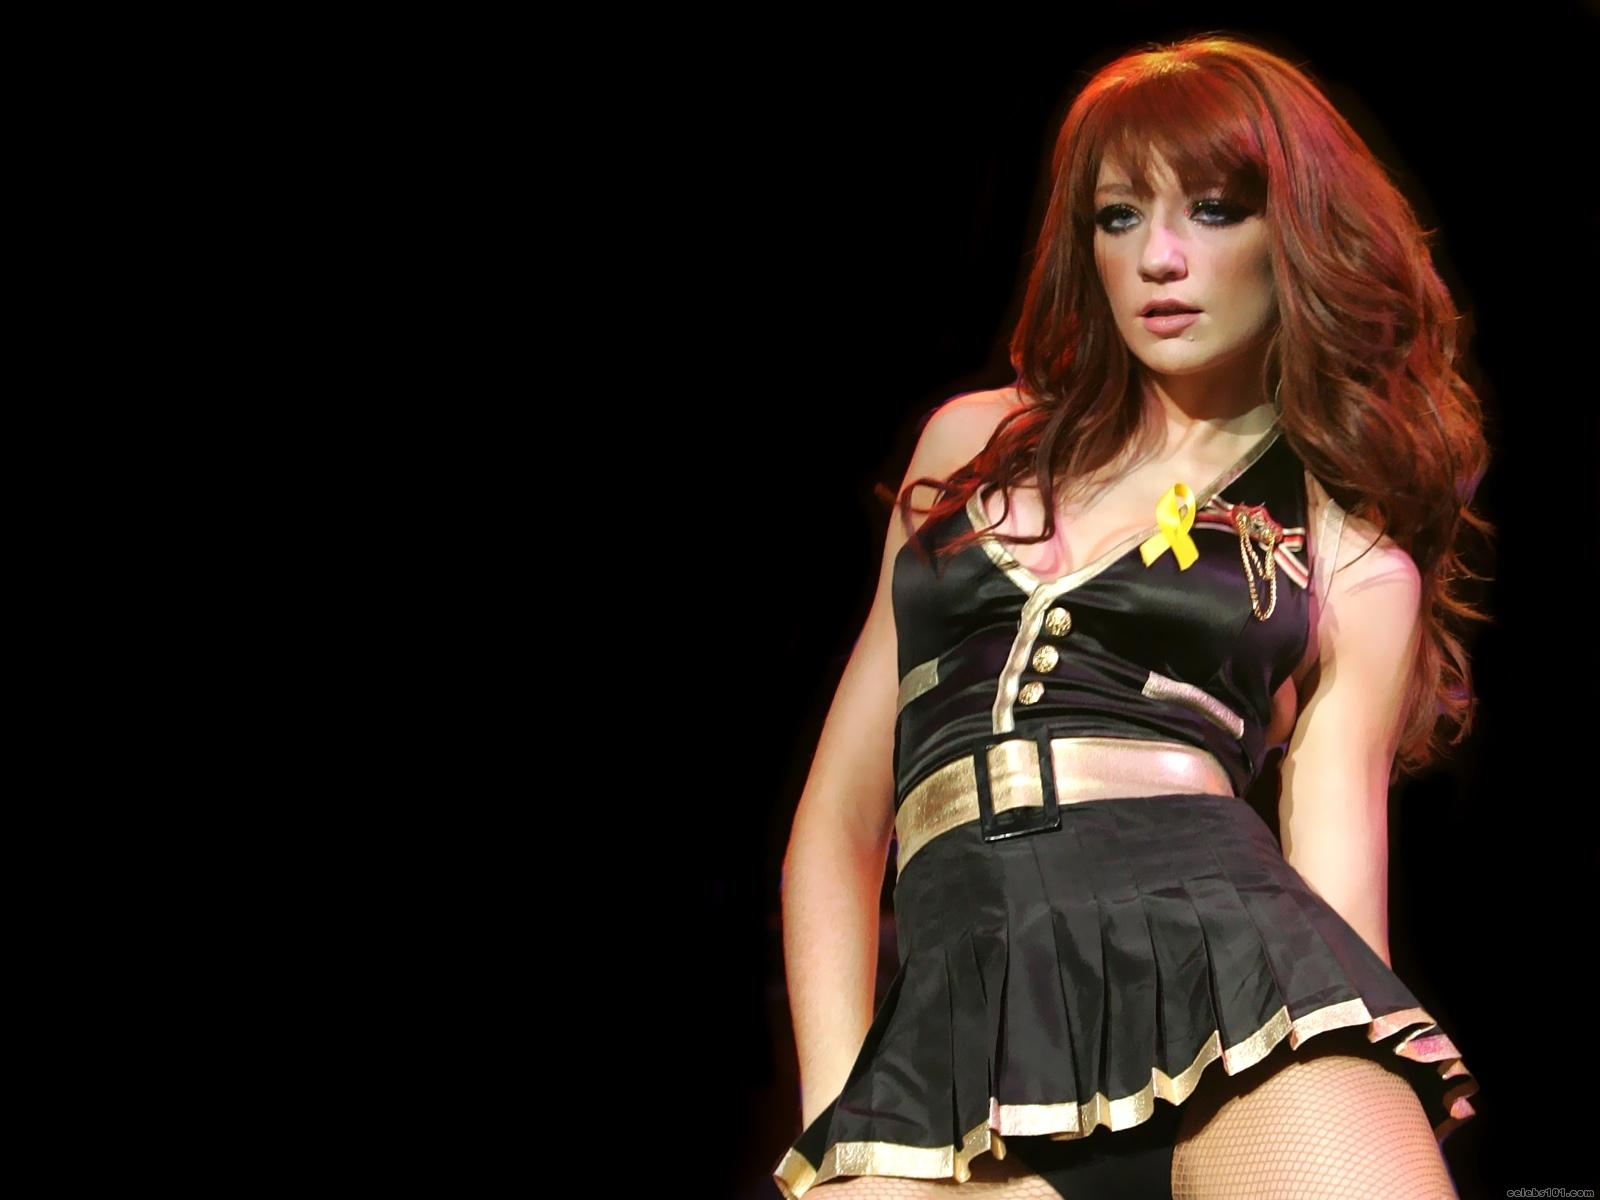 nicola roberts high quality wallpaper size 1600x1200 of